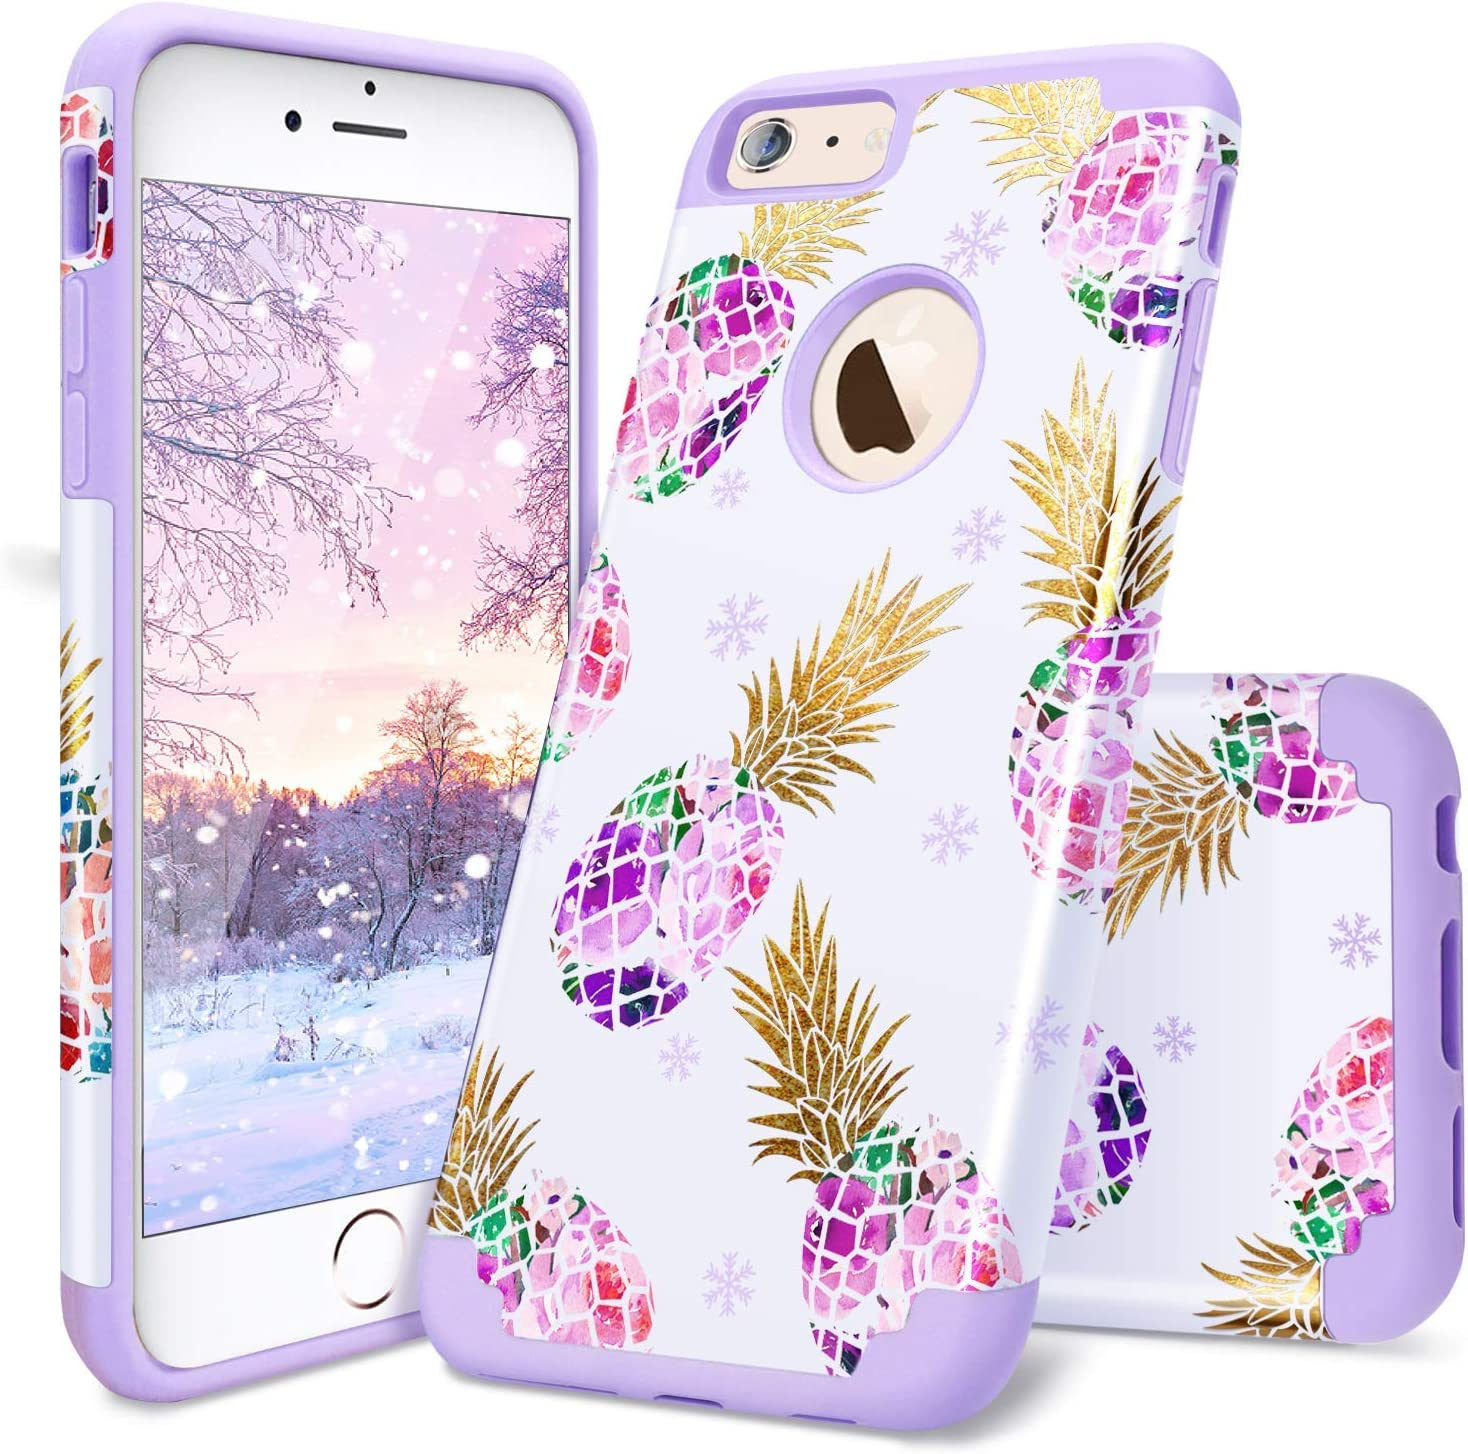 iPhone 6 Plus Case,Casewind iPhone 6s Plus Case Pineapple Glitter Slim Fit Hard PC Soft Silicone 2 in 1 Hybrid Protection Shockproof Anti Scratch Rugged Bumper Phone Case for iPhone 6s Plus,Purple